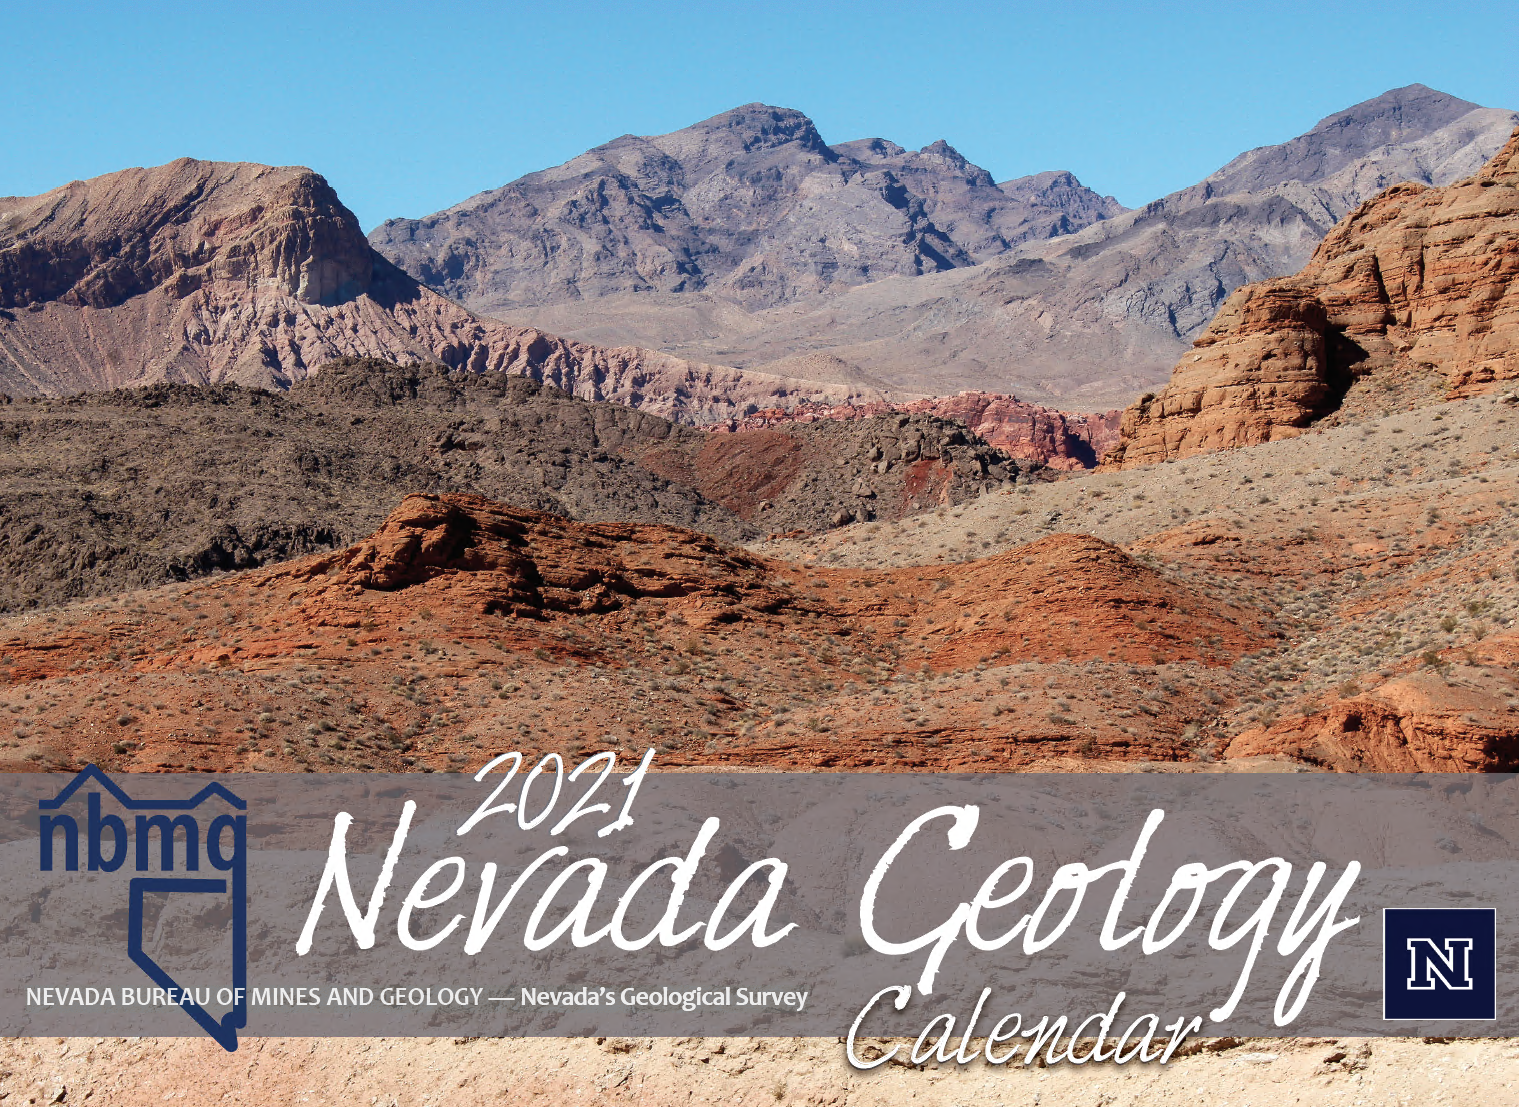 Cover of the 2021 Nevada Geology Calendar